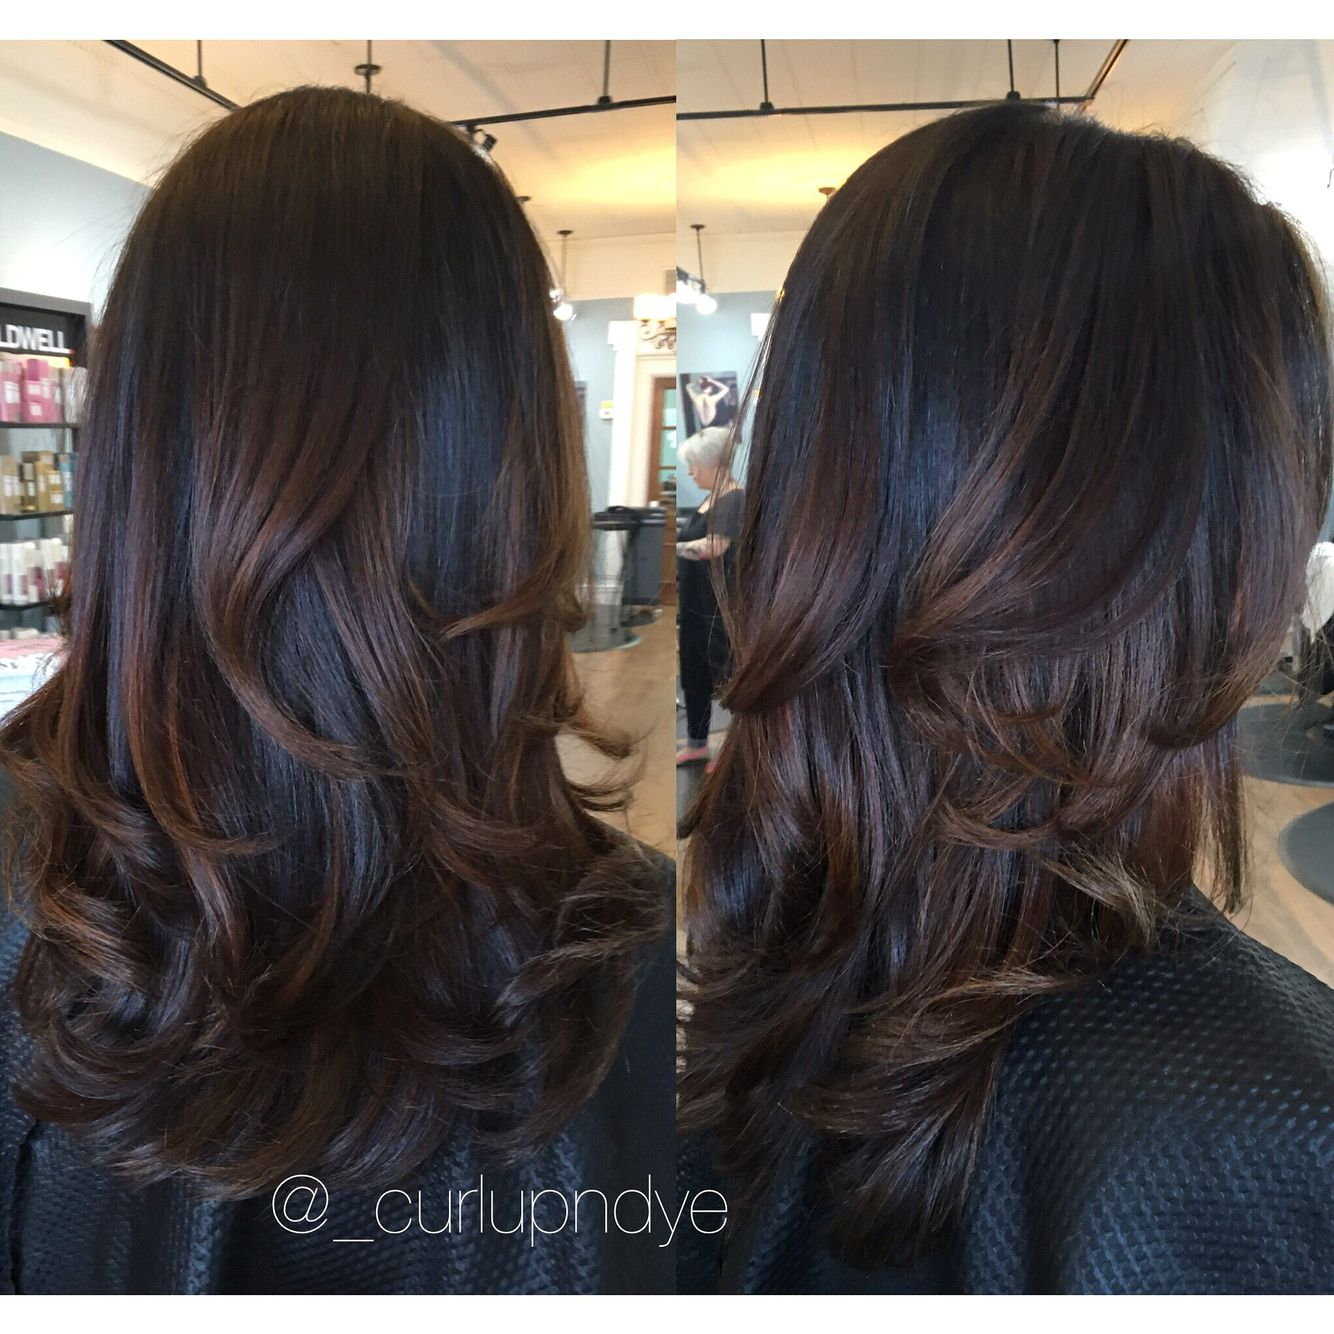 natural brown hairpainting balayage brownhair brunette blowout curls ombre hair. Black Bedroom Furniture Sets. Home Design Ideas